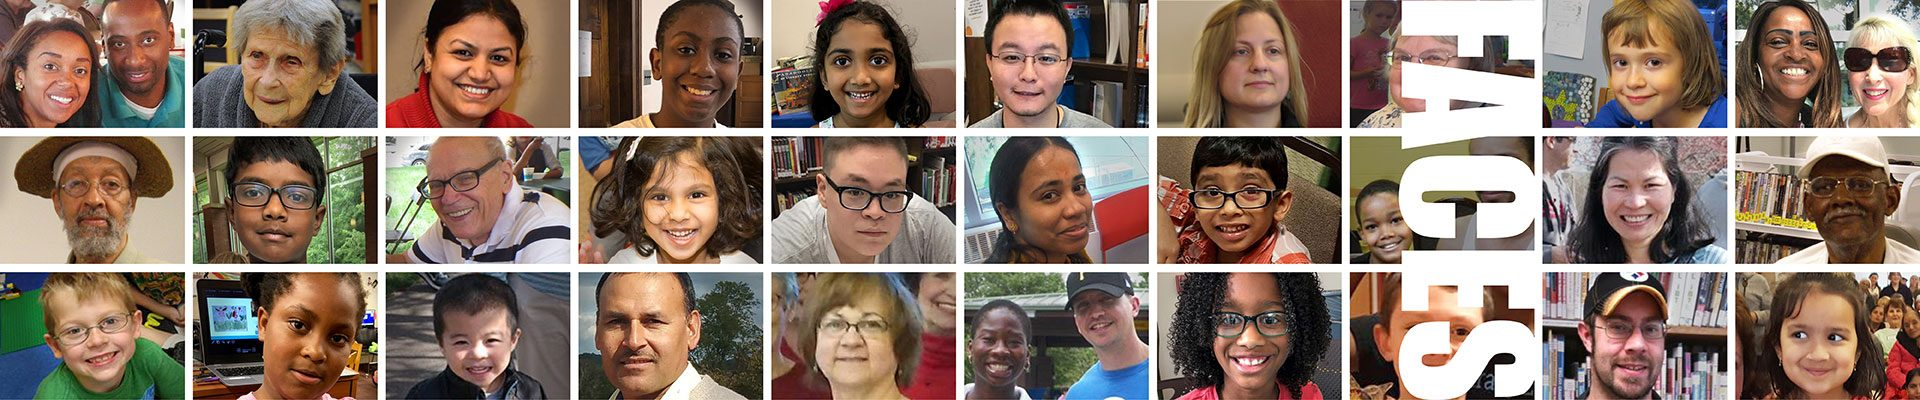 Faces of the Library: Share Your Library Story